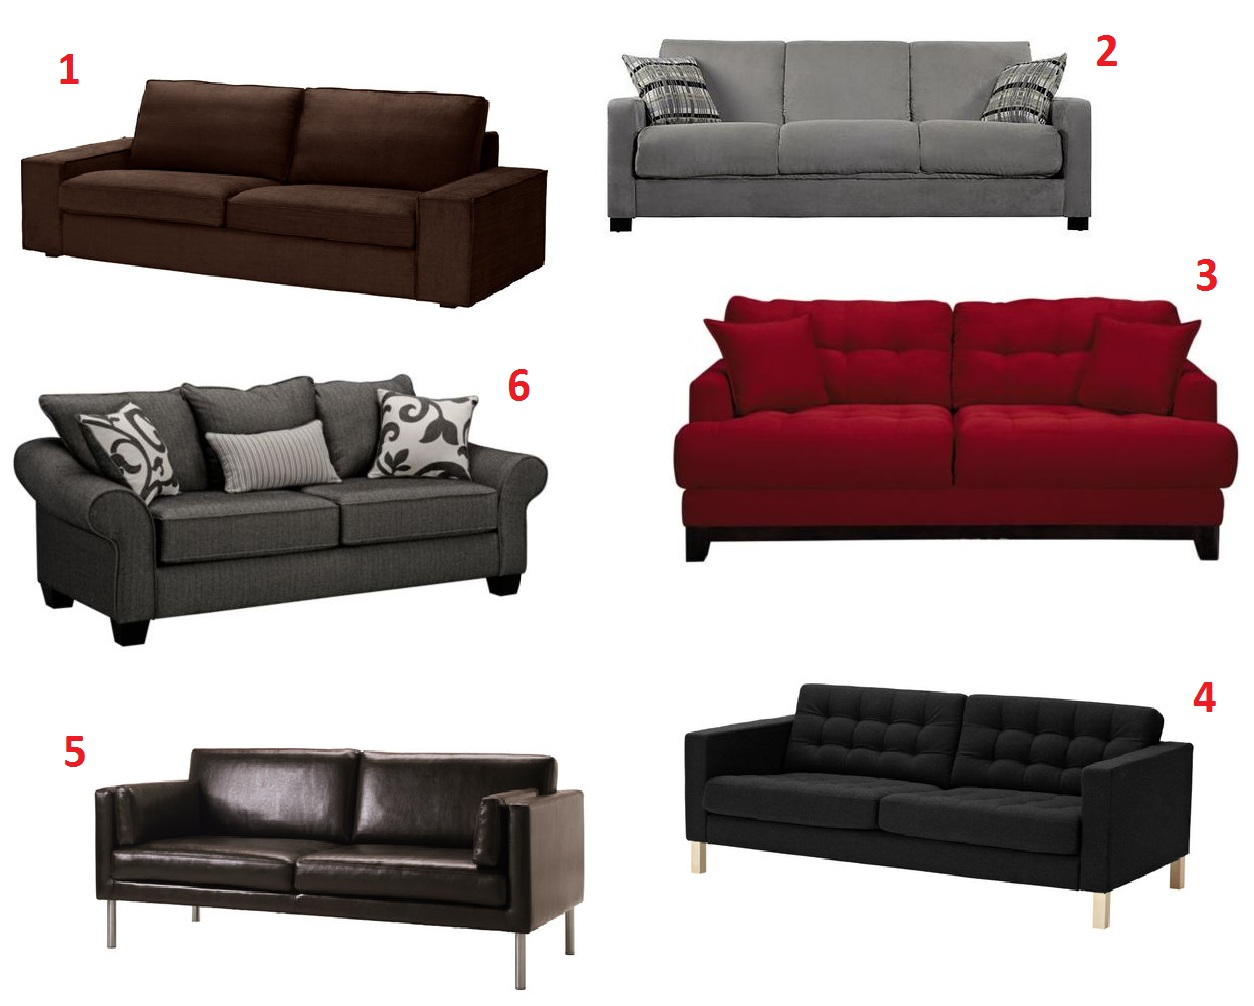 Apartment 528: Product Roundup: 28 Couches Under $1000